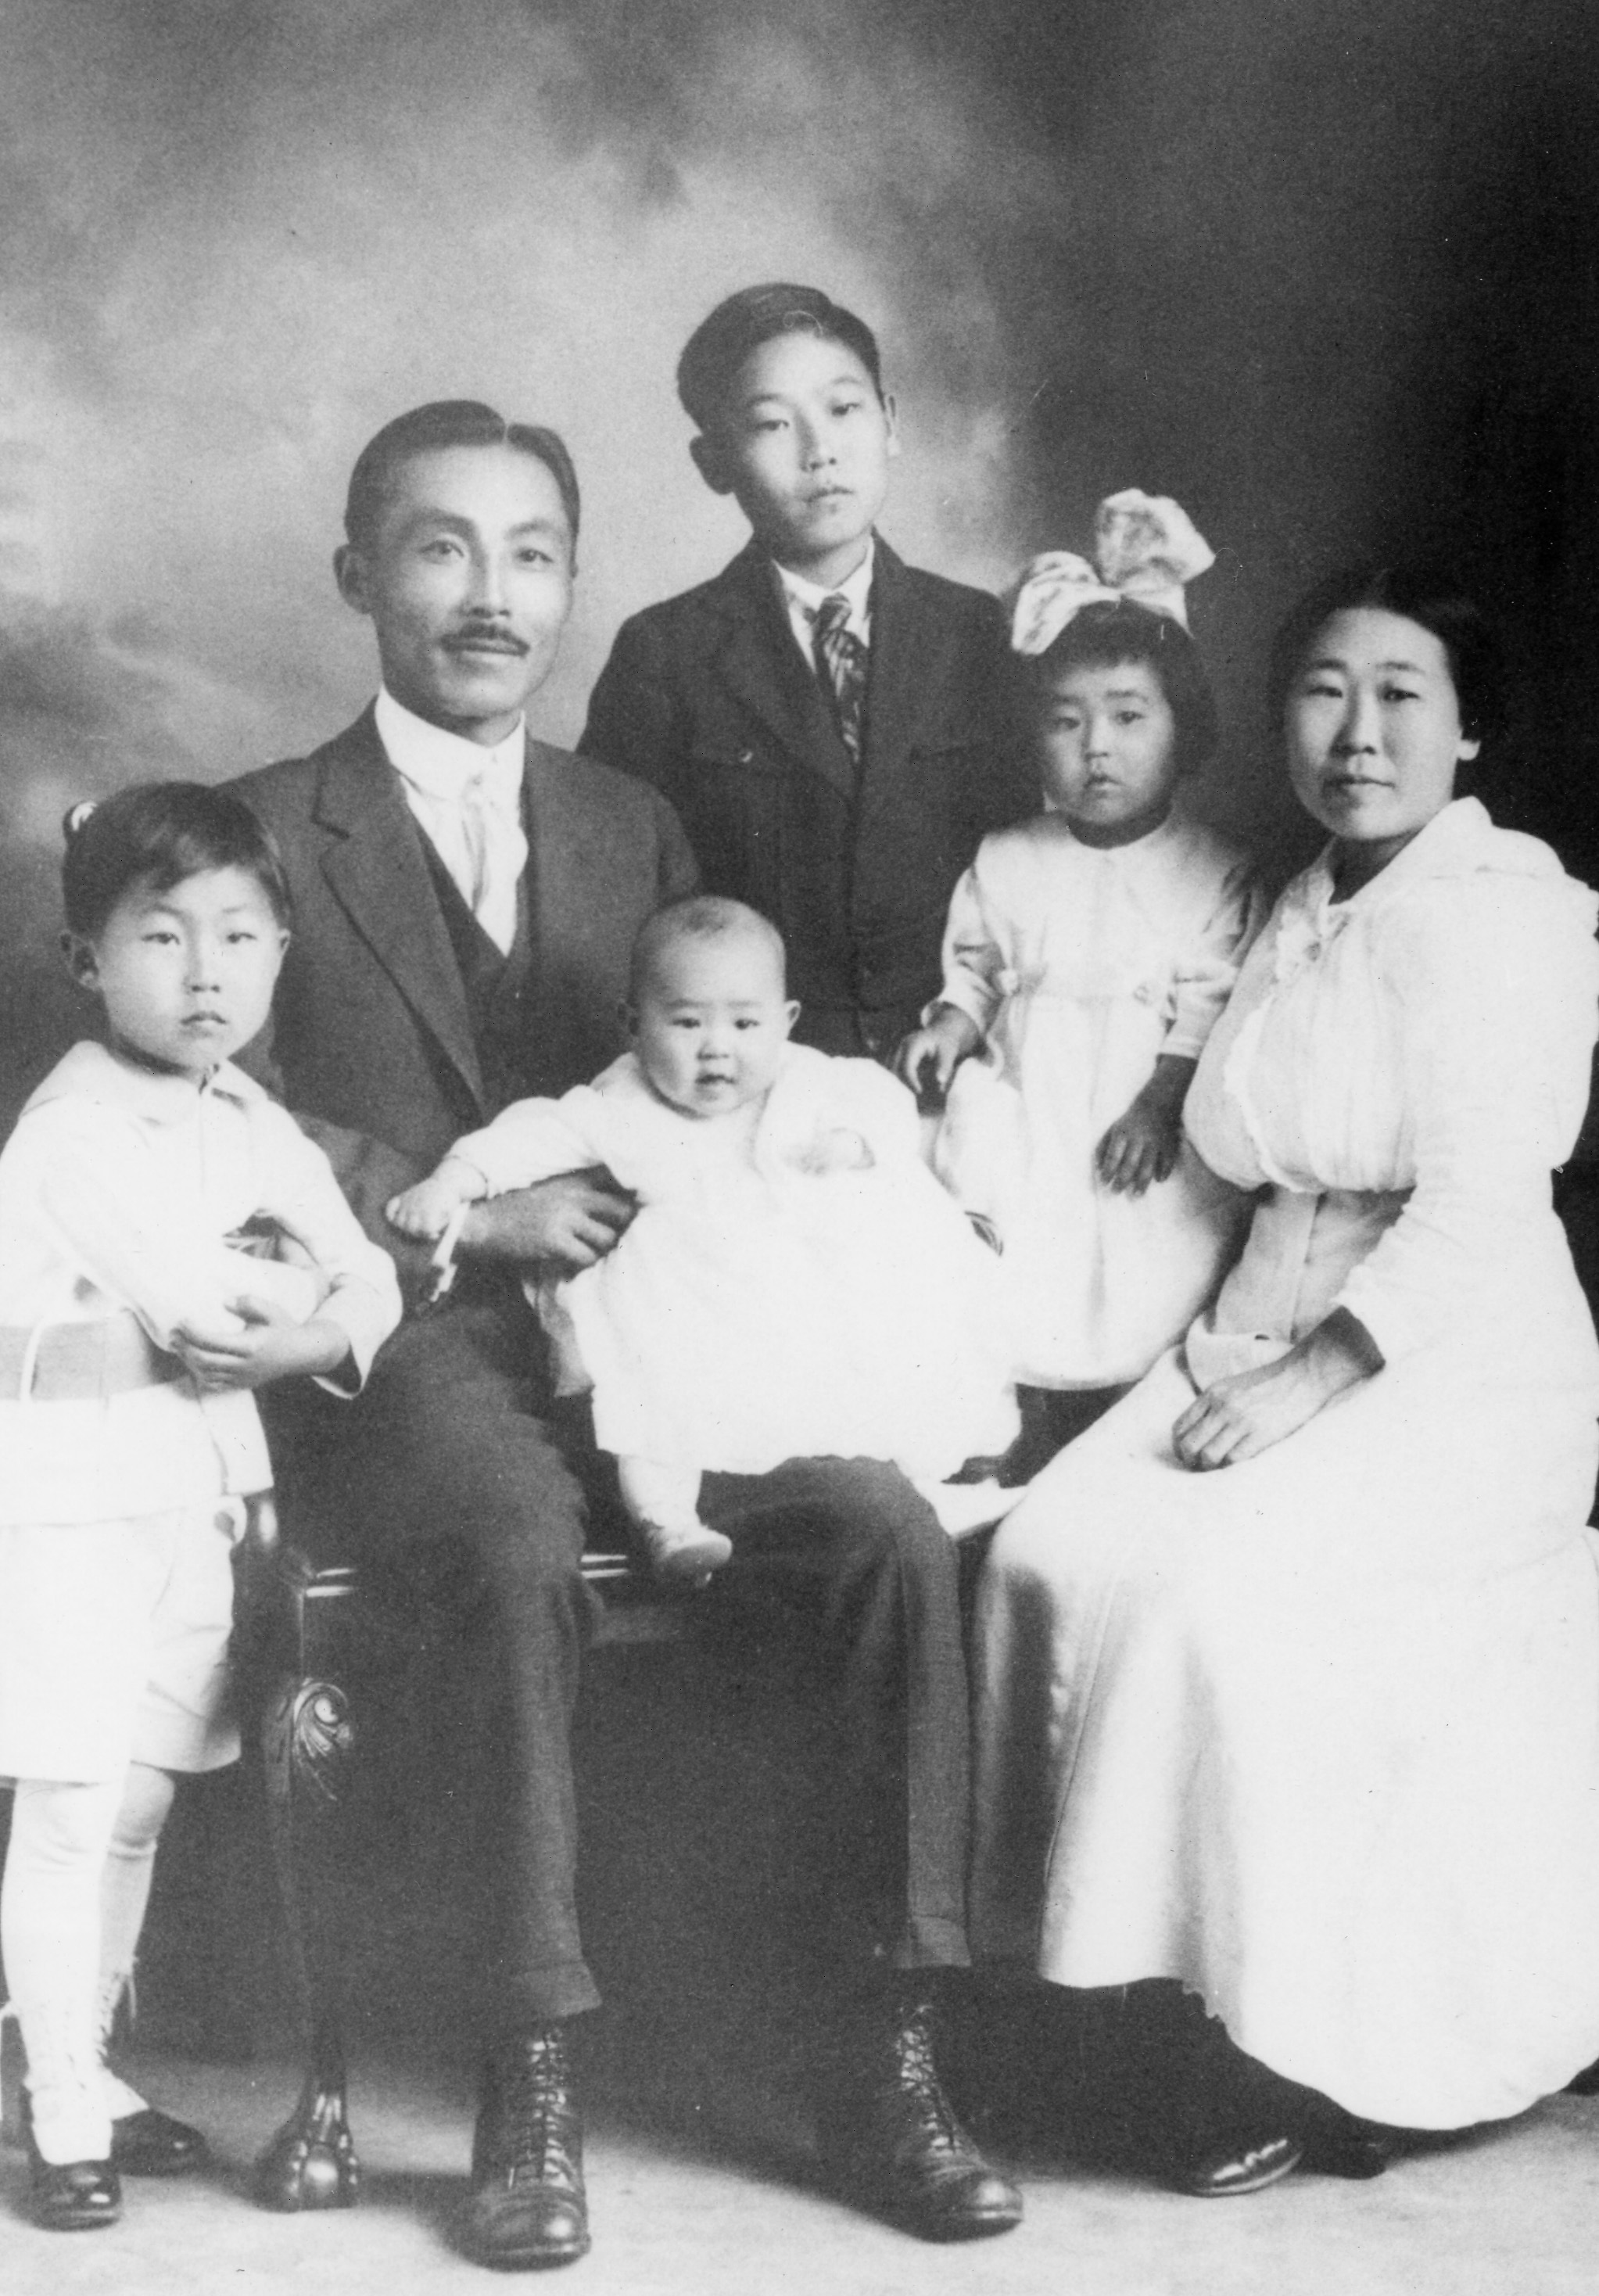 Susan (with hair bowtie) seated with her family circa 1917.